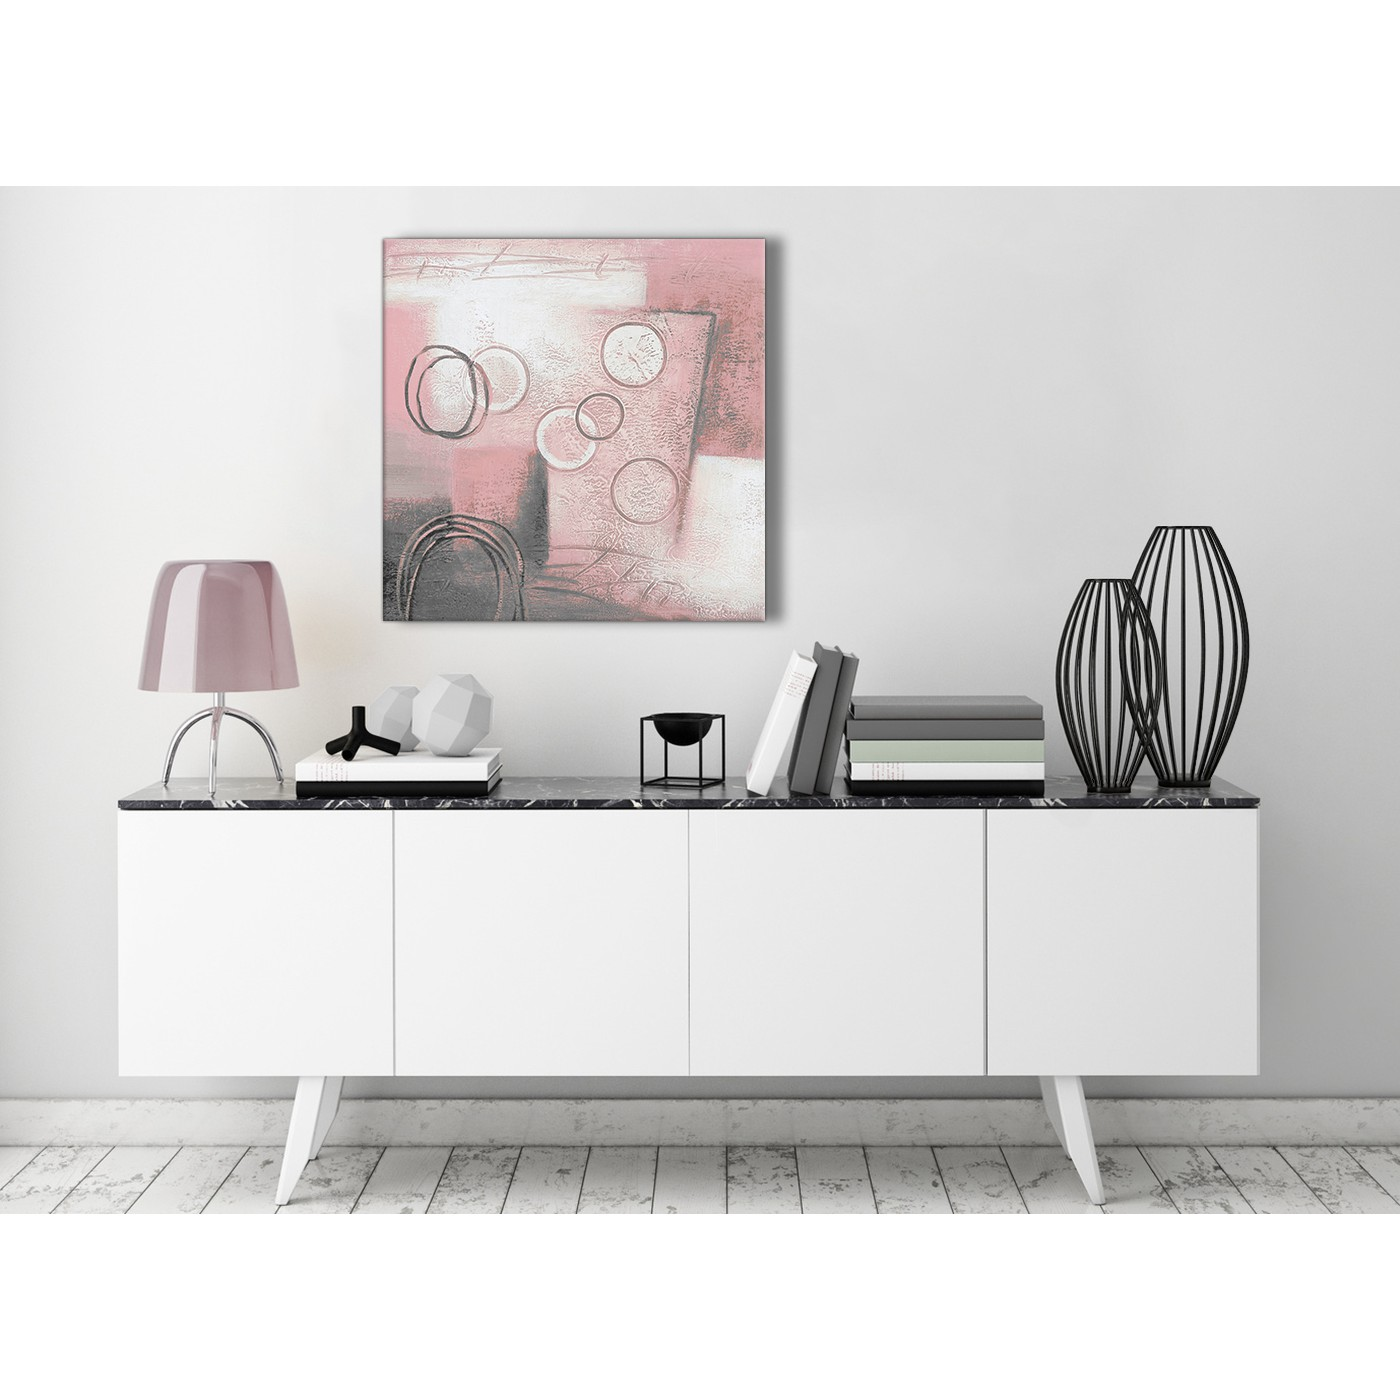 Tulip Rose Wall Art Painting For Kitchen Room Golden: Blush Pink Grey Painting Kitchen Canvas Pictures